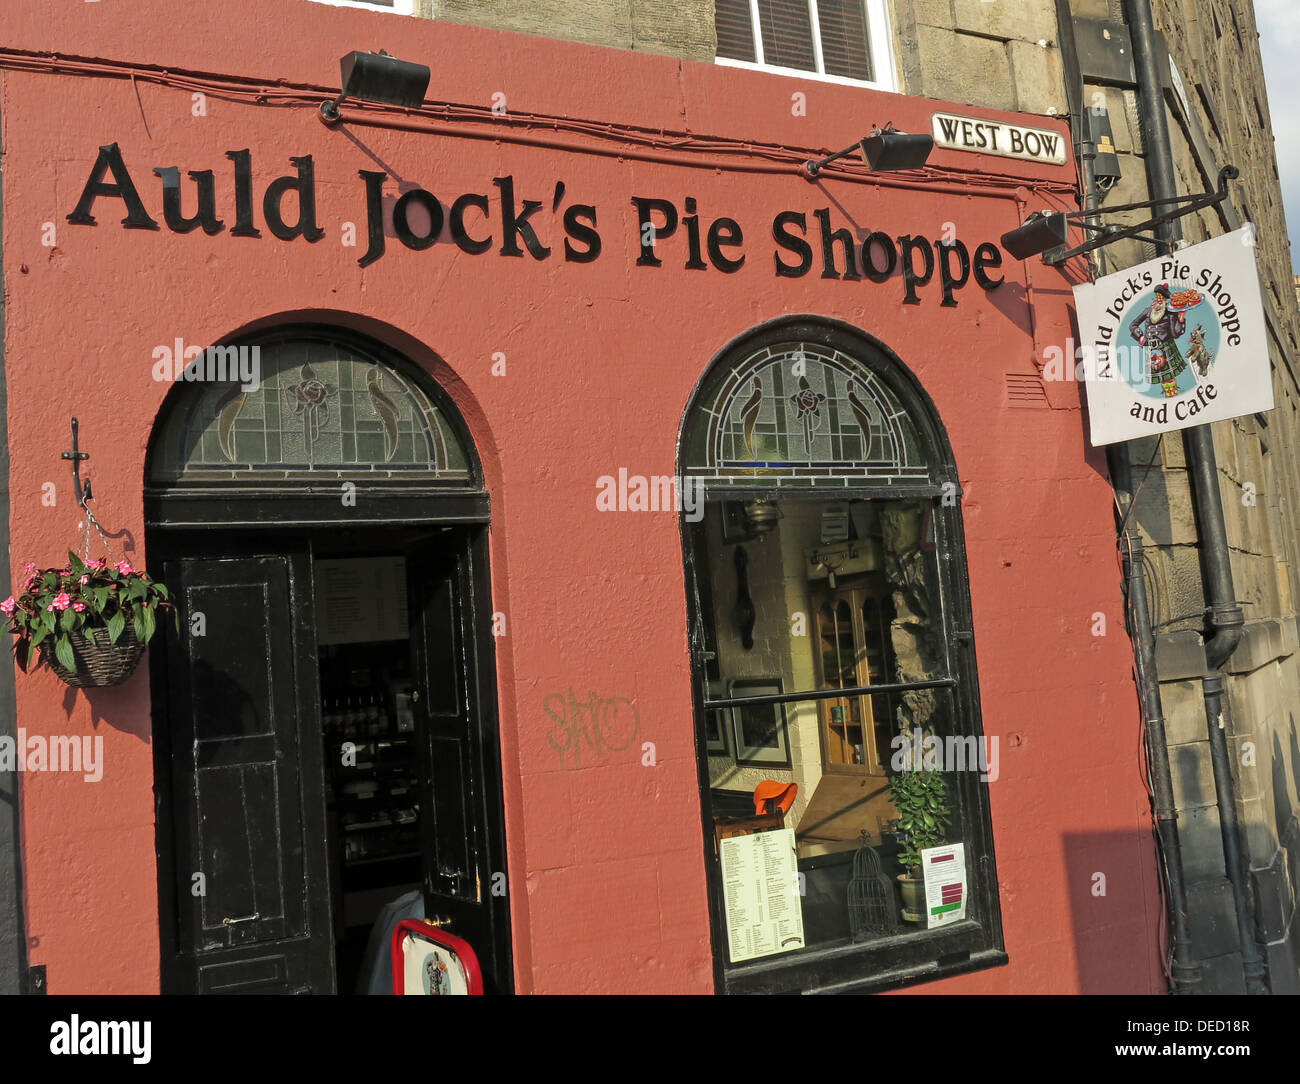 Old,jock,Shop,WestBow,near,Grassmarket,Grass,Market,top,of,traditional,Scots,Scottish,food,city,Edinburgh,Scotland,UK,city,of,Great,Britain,GB,tourist,tourism,pieshop,GoTonySmith